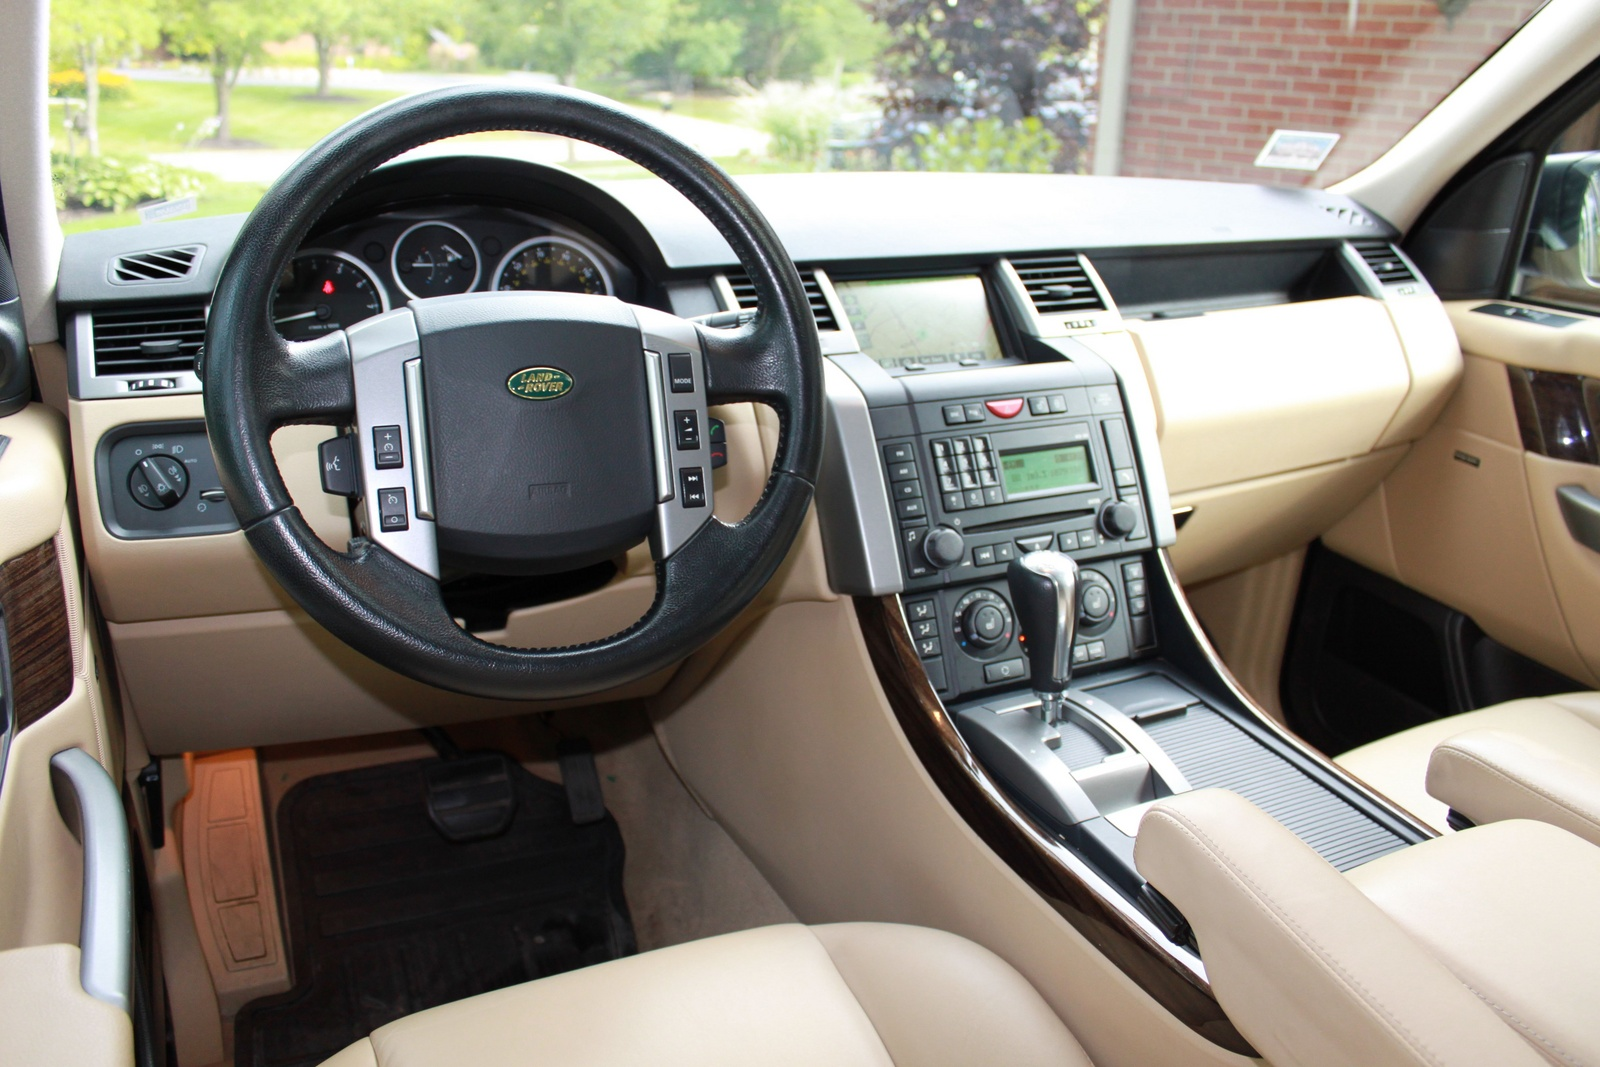 2008 Land Rover Range Rover Sport Interior Pictures